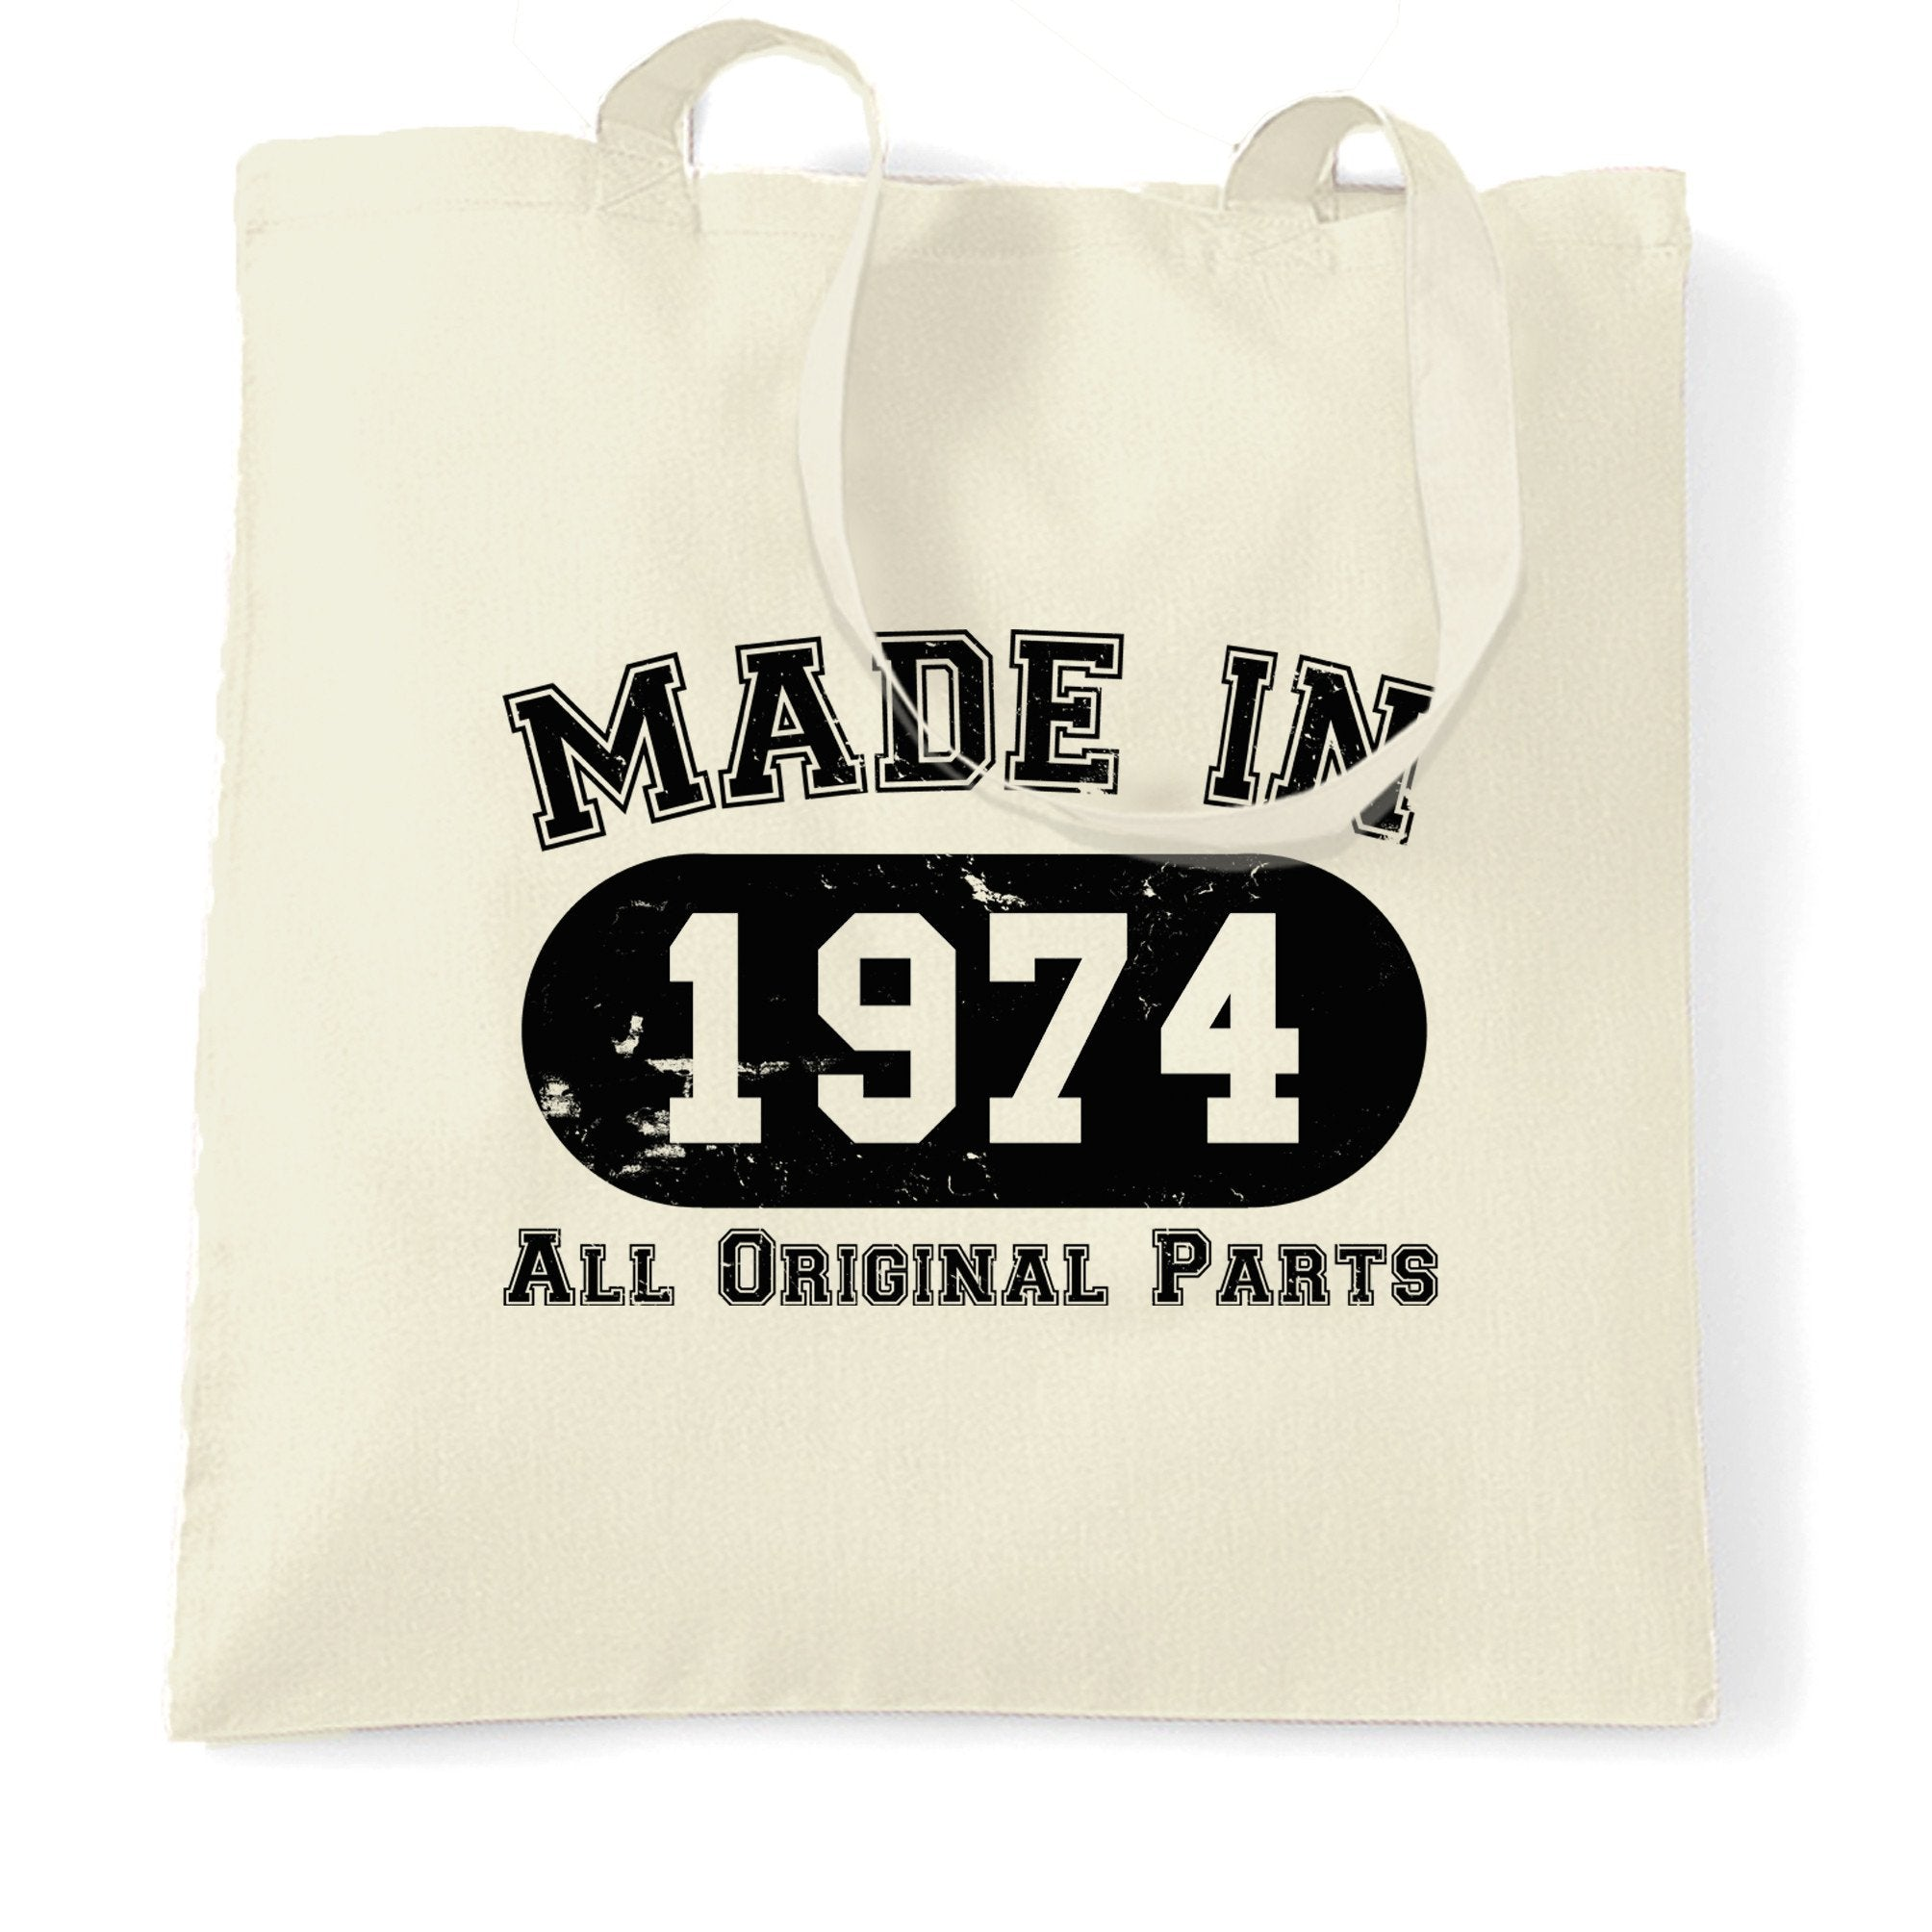 Made in 1974 All Original Parts Tote Bag [Distressed]